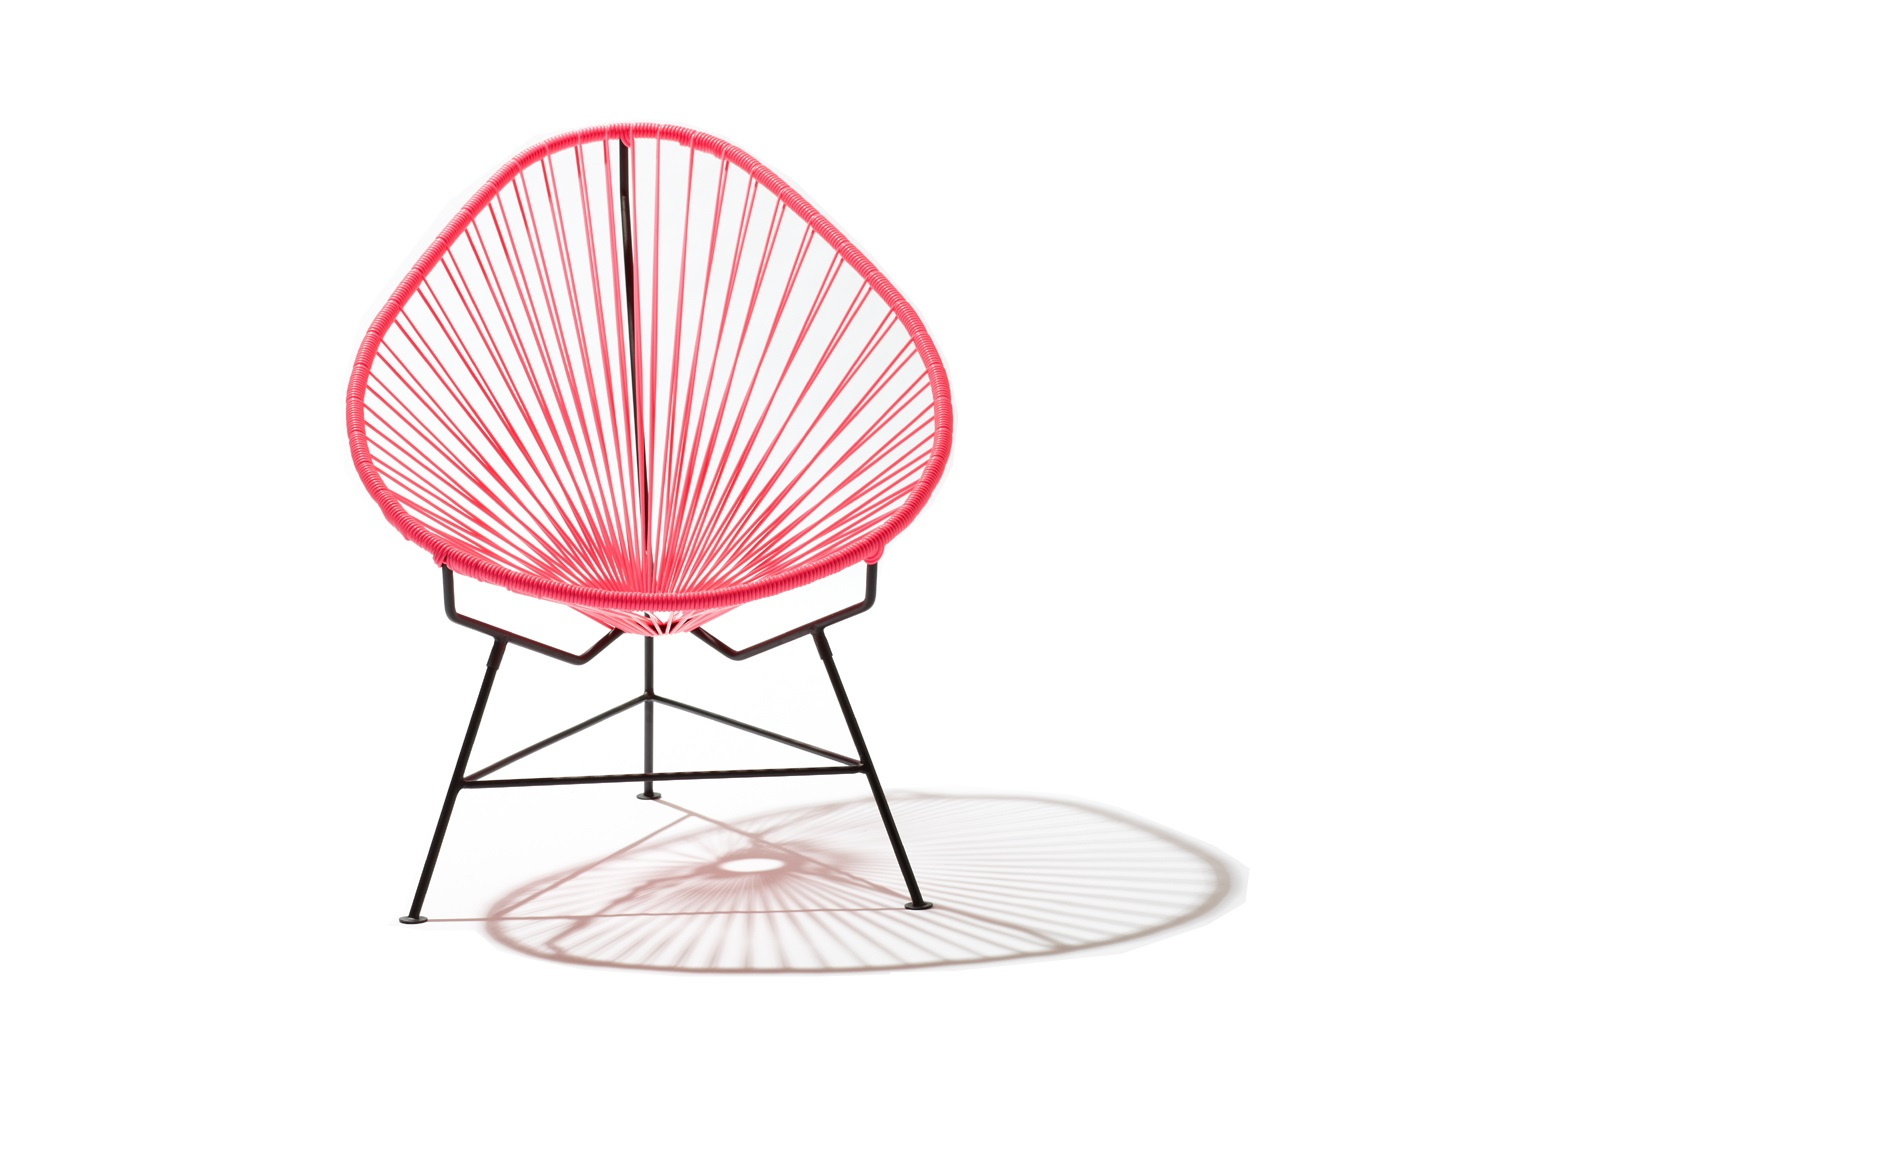 ACAPULCO CHAIR Wide x Deep x High (720x770x830)mm  Seat 420 mm Price: 1.500.000 VND/ chair